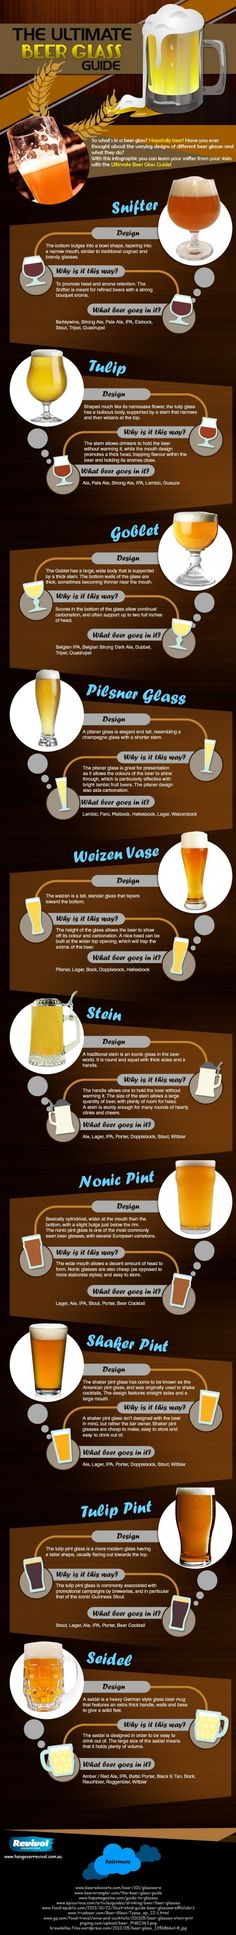 Why There Are So Many Glasses for Beer (and Which Goes in What Glass)